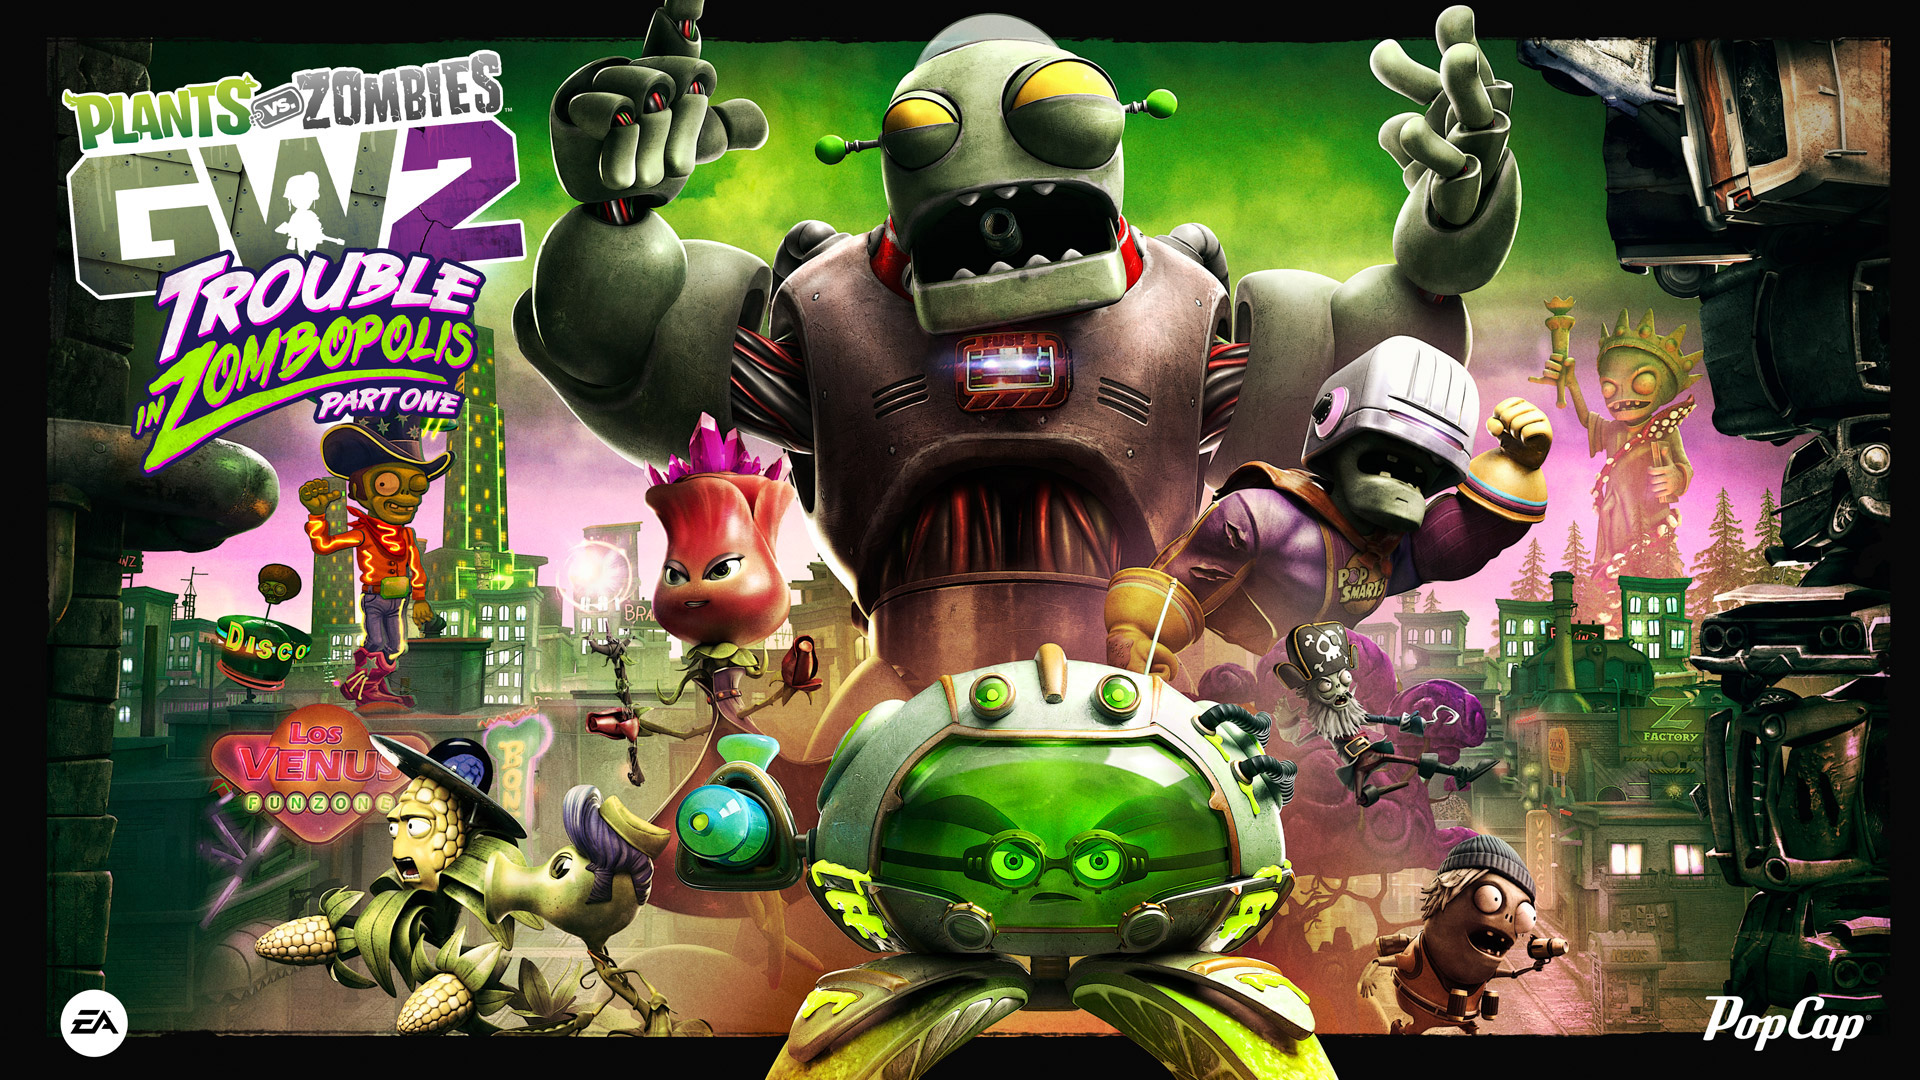 Free Plants vs. Zombies: Garden Warfare 2 Wallpaper in 1920x1080